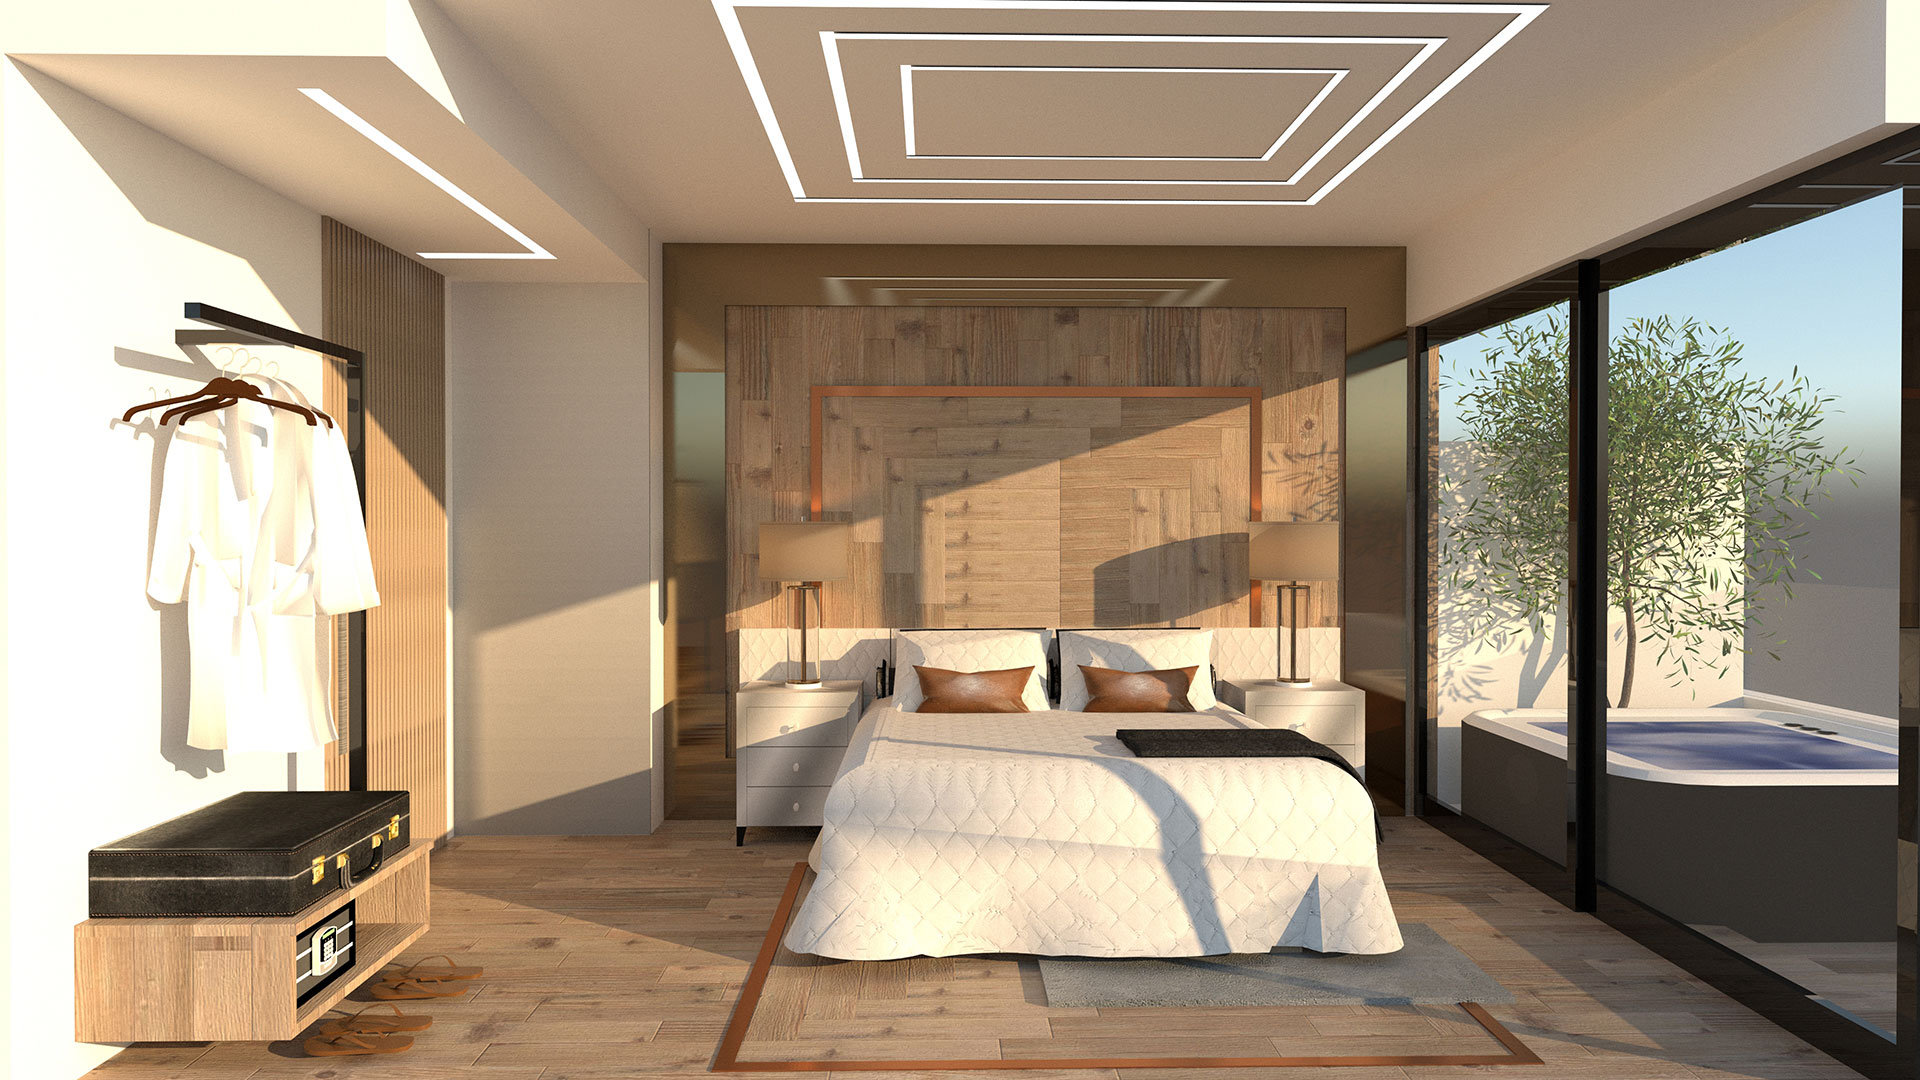 Interior Design Athens Heritage Hotel Bed overview